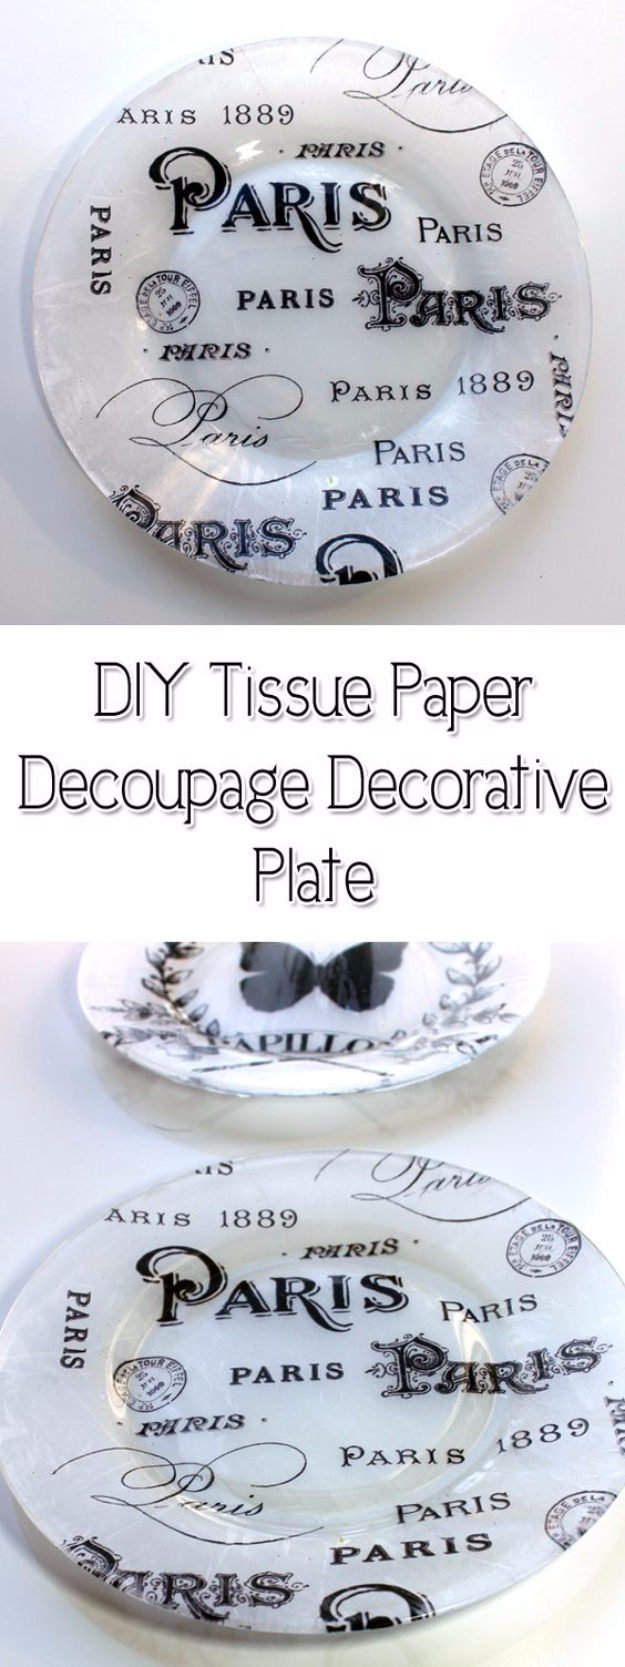 DIY Projects With Old Plates and Dishes - DIY Tissue Paper Decoupage Decorative Plate - Creative Home Decor for Rustic, Vintage and Farmhouse Looks. Upcycle With These Best Crafts and Project Tutorials #diy #kitchen #crafts